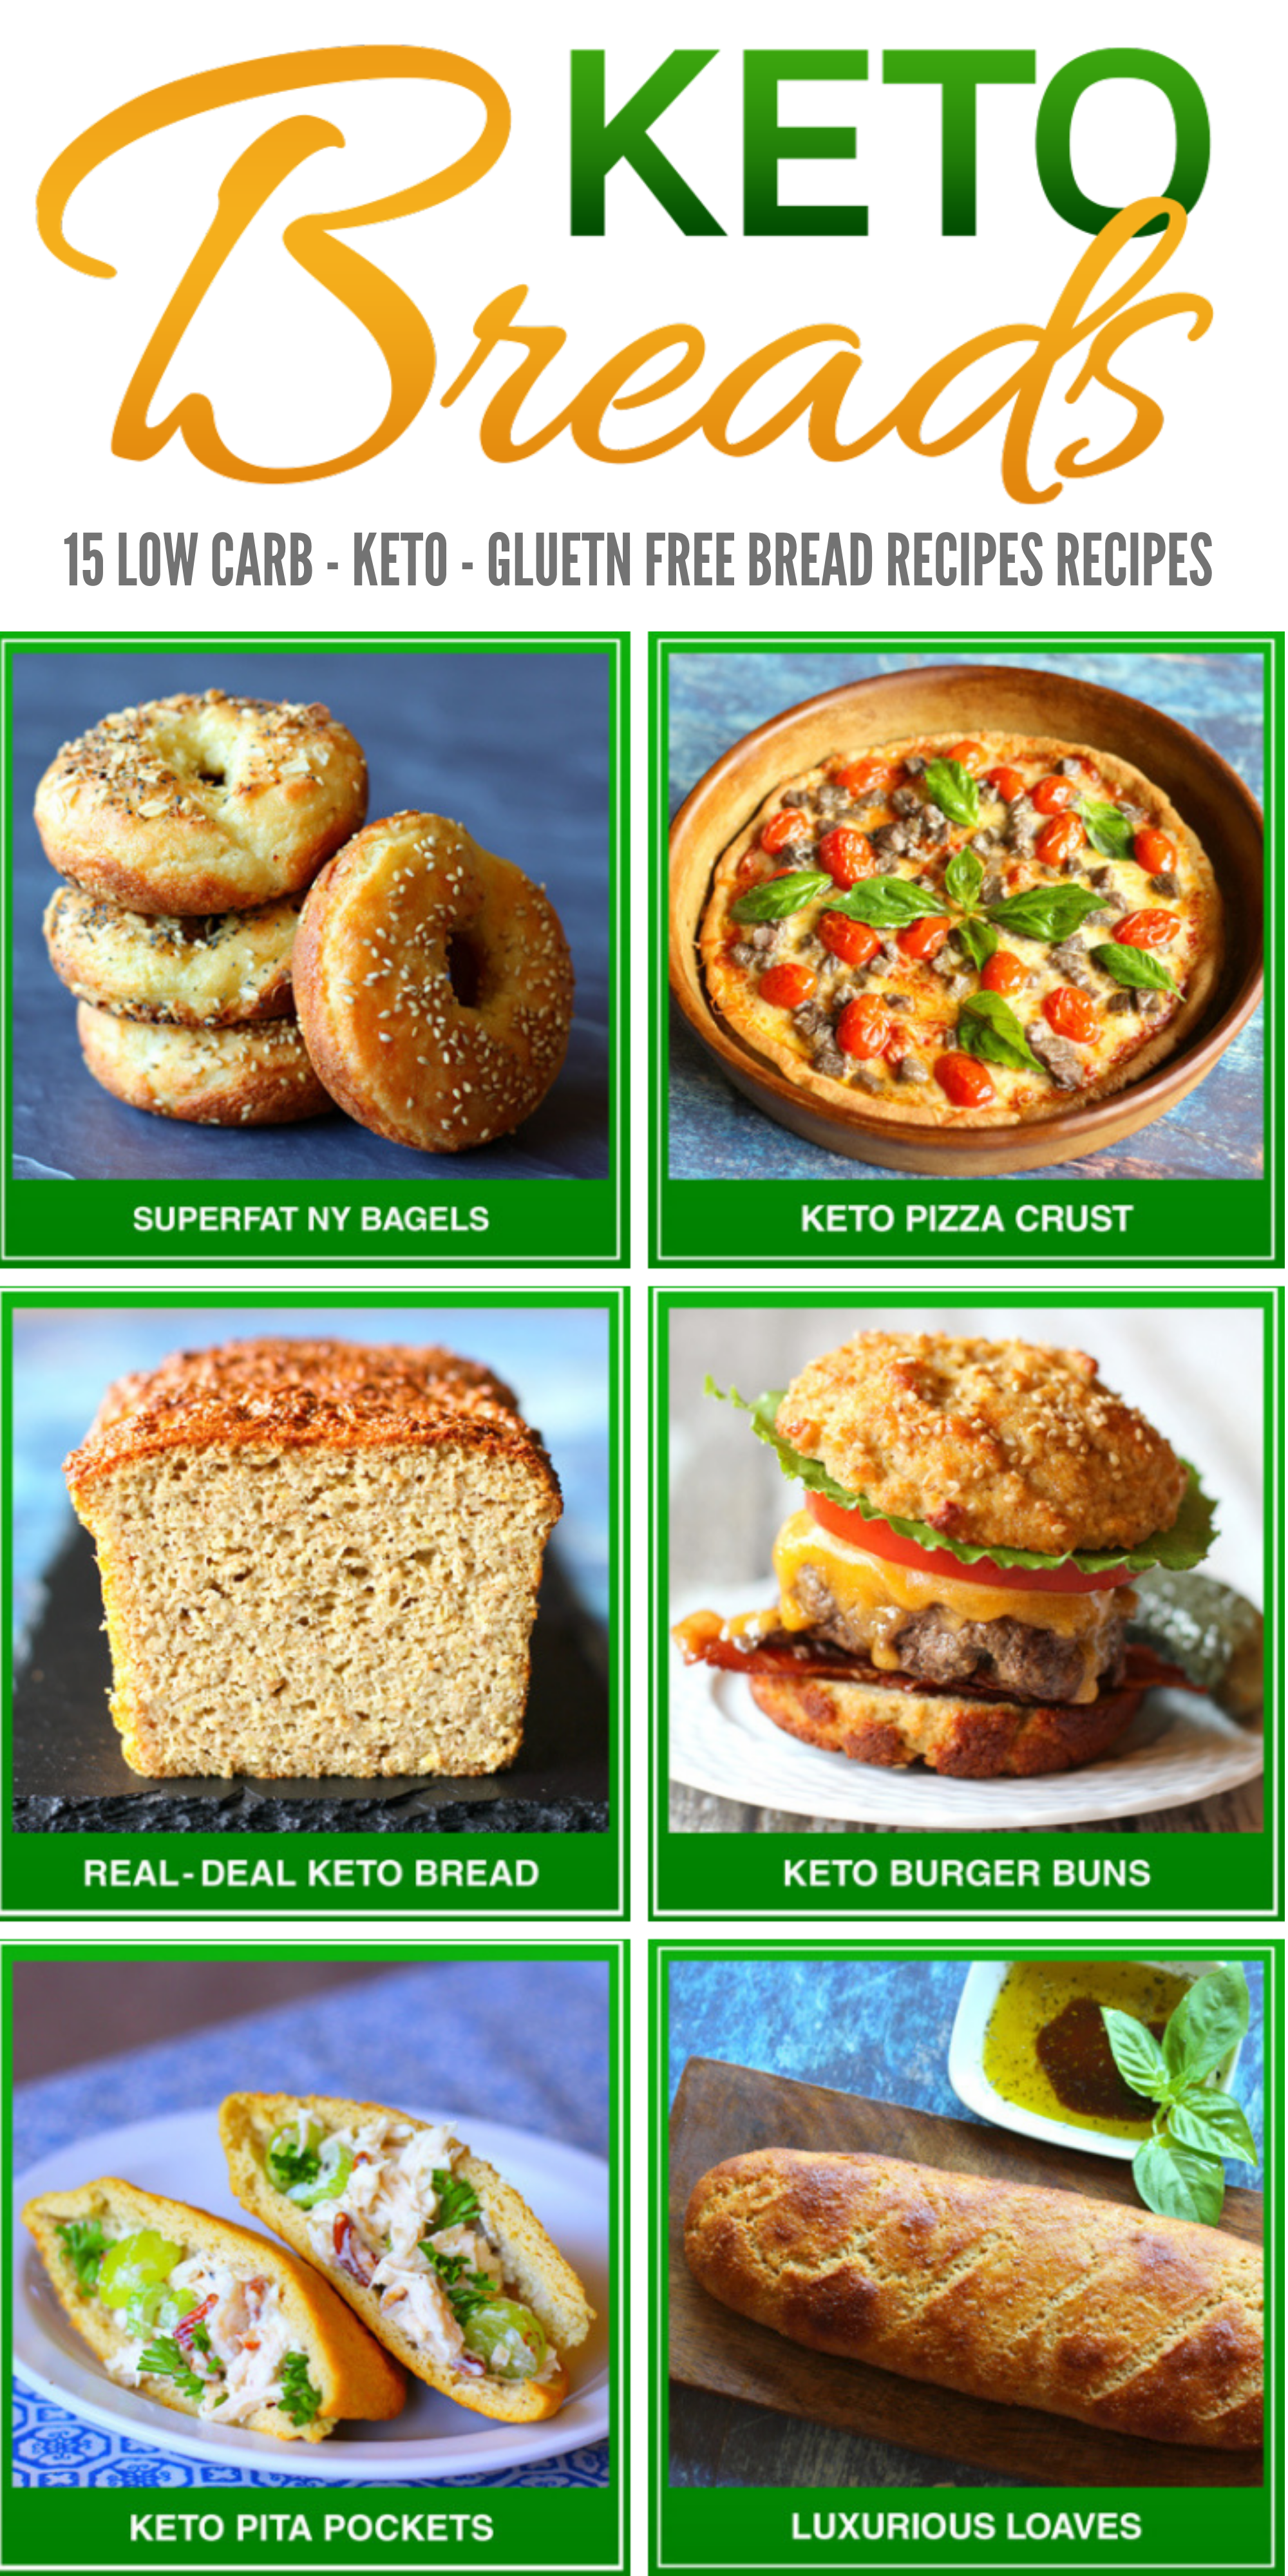 15 Low Carb Keto bread recipes, now you can eat bread as much as you want and still not carry it around your waistline. Make breads using loa carb flour like almond flour, coconut flour and others. You'll find alternatives to all types of breads you can imagine.